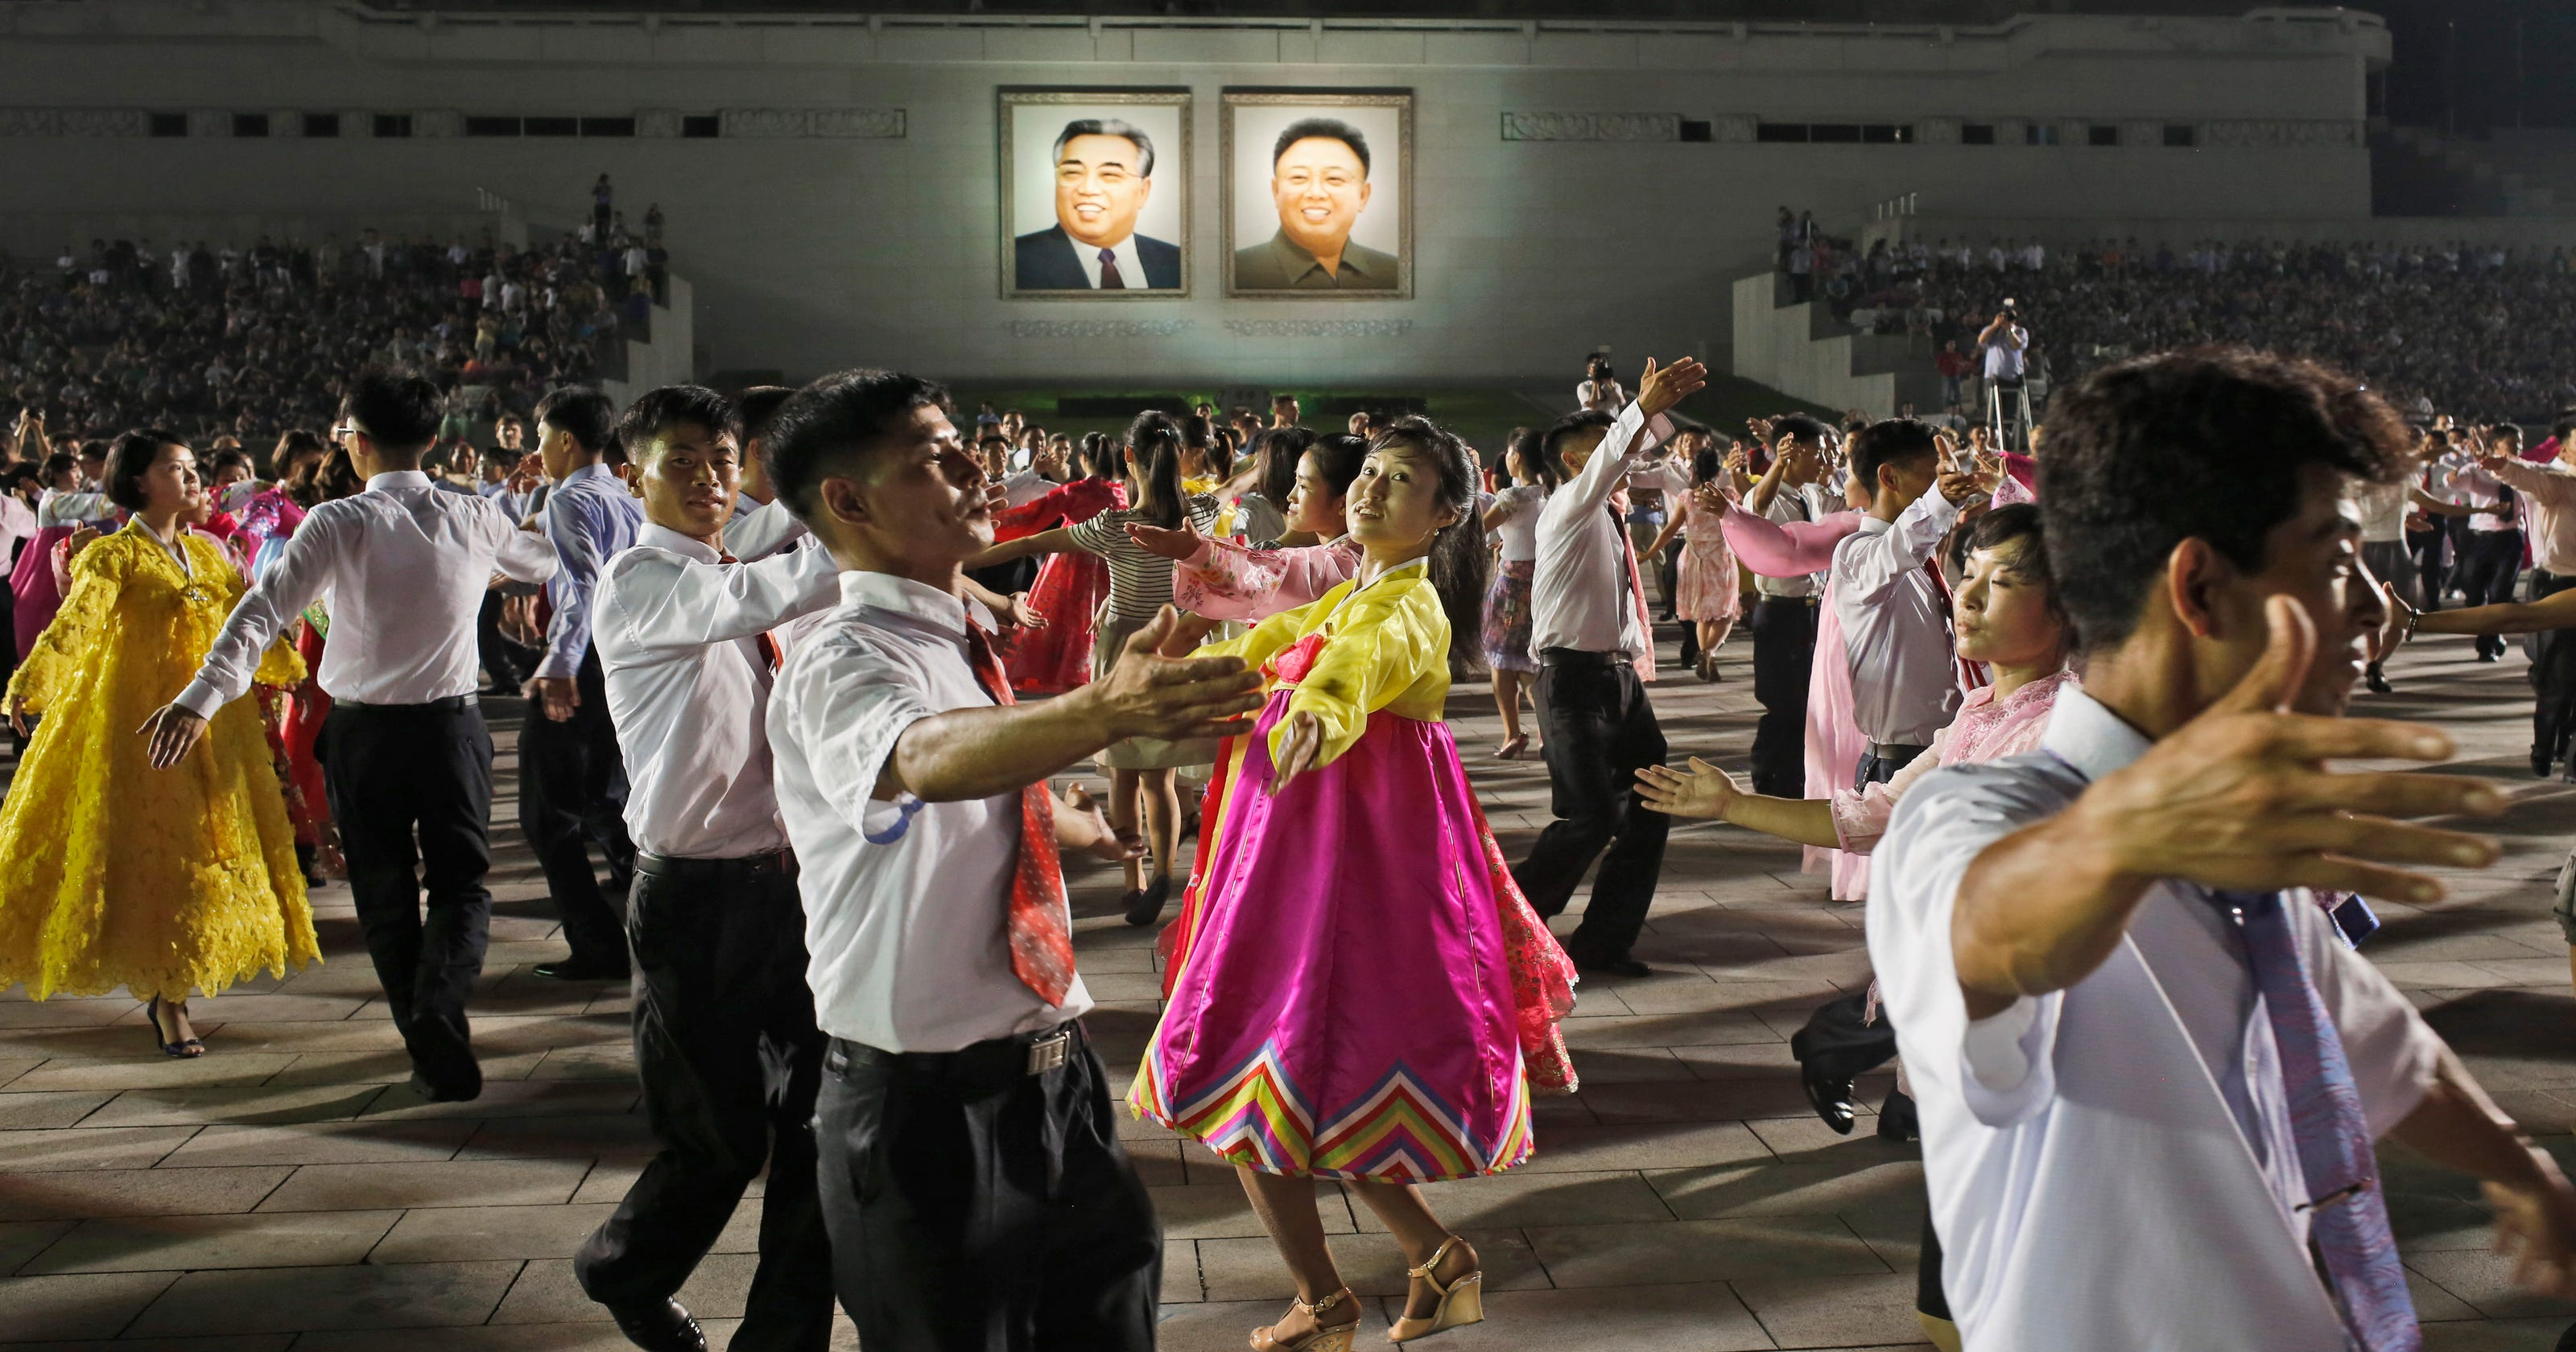 054d4660aa9 Here s an idea for engaging with North Korea. Bring in a Western rock band  and make a movie about it